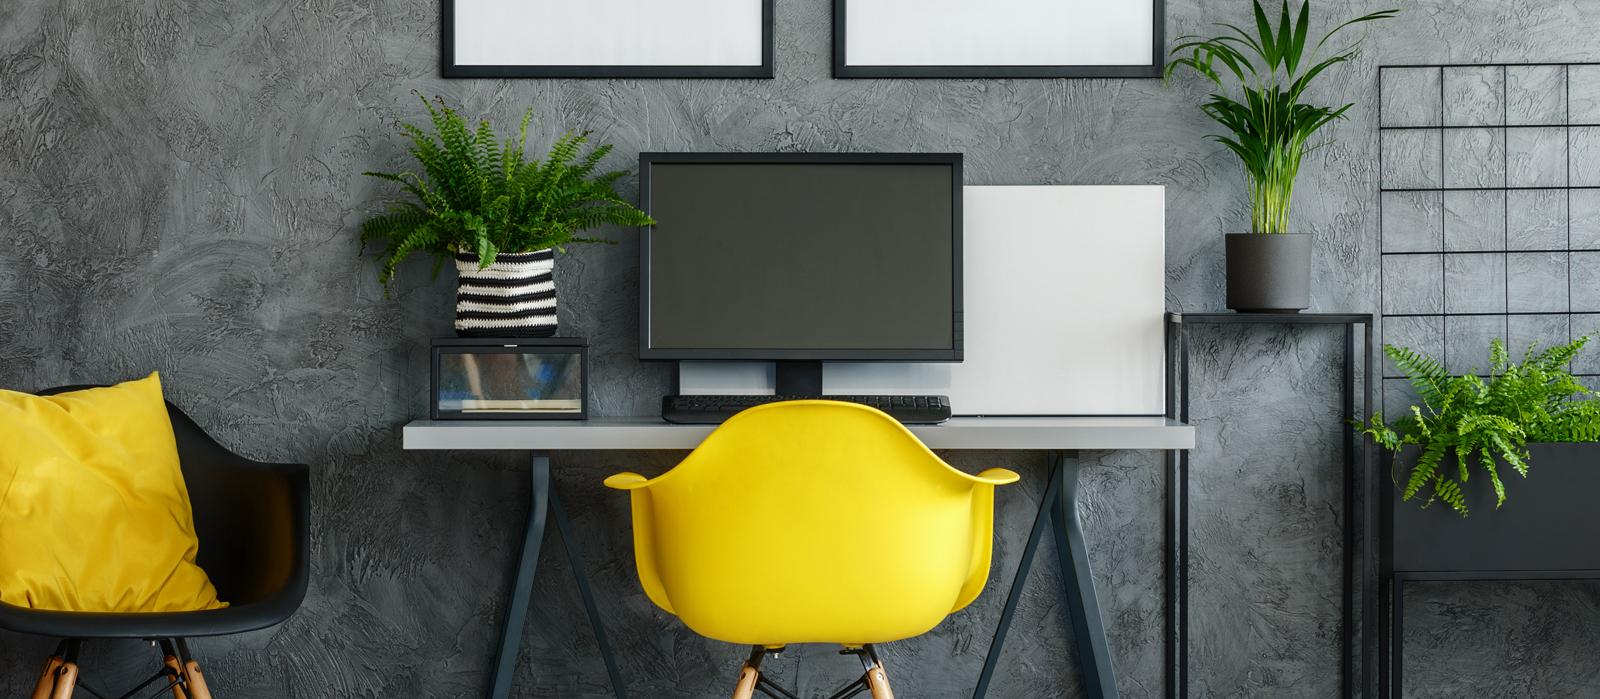 4 Tips to Improve the Atmosphere of Your Home Office